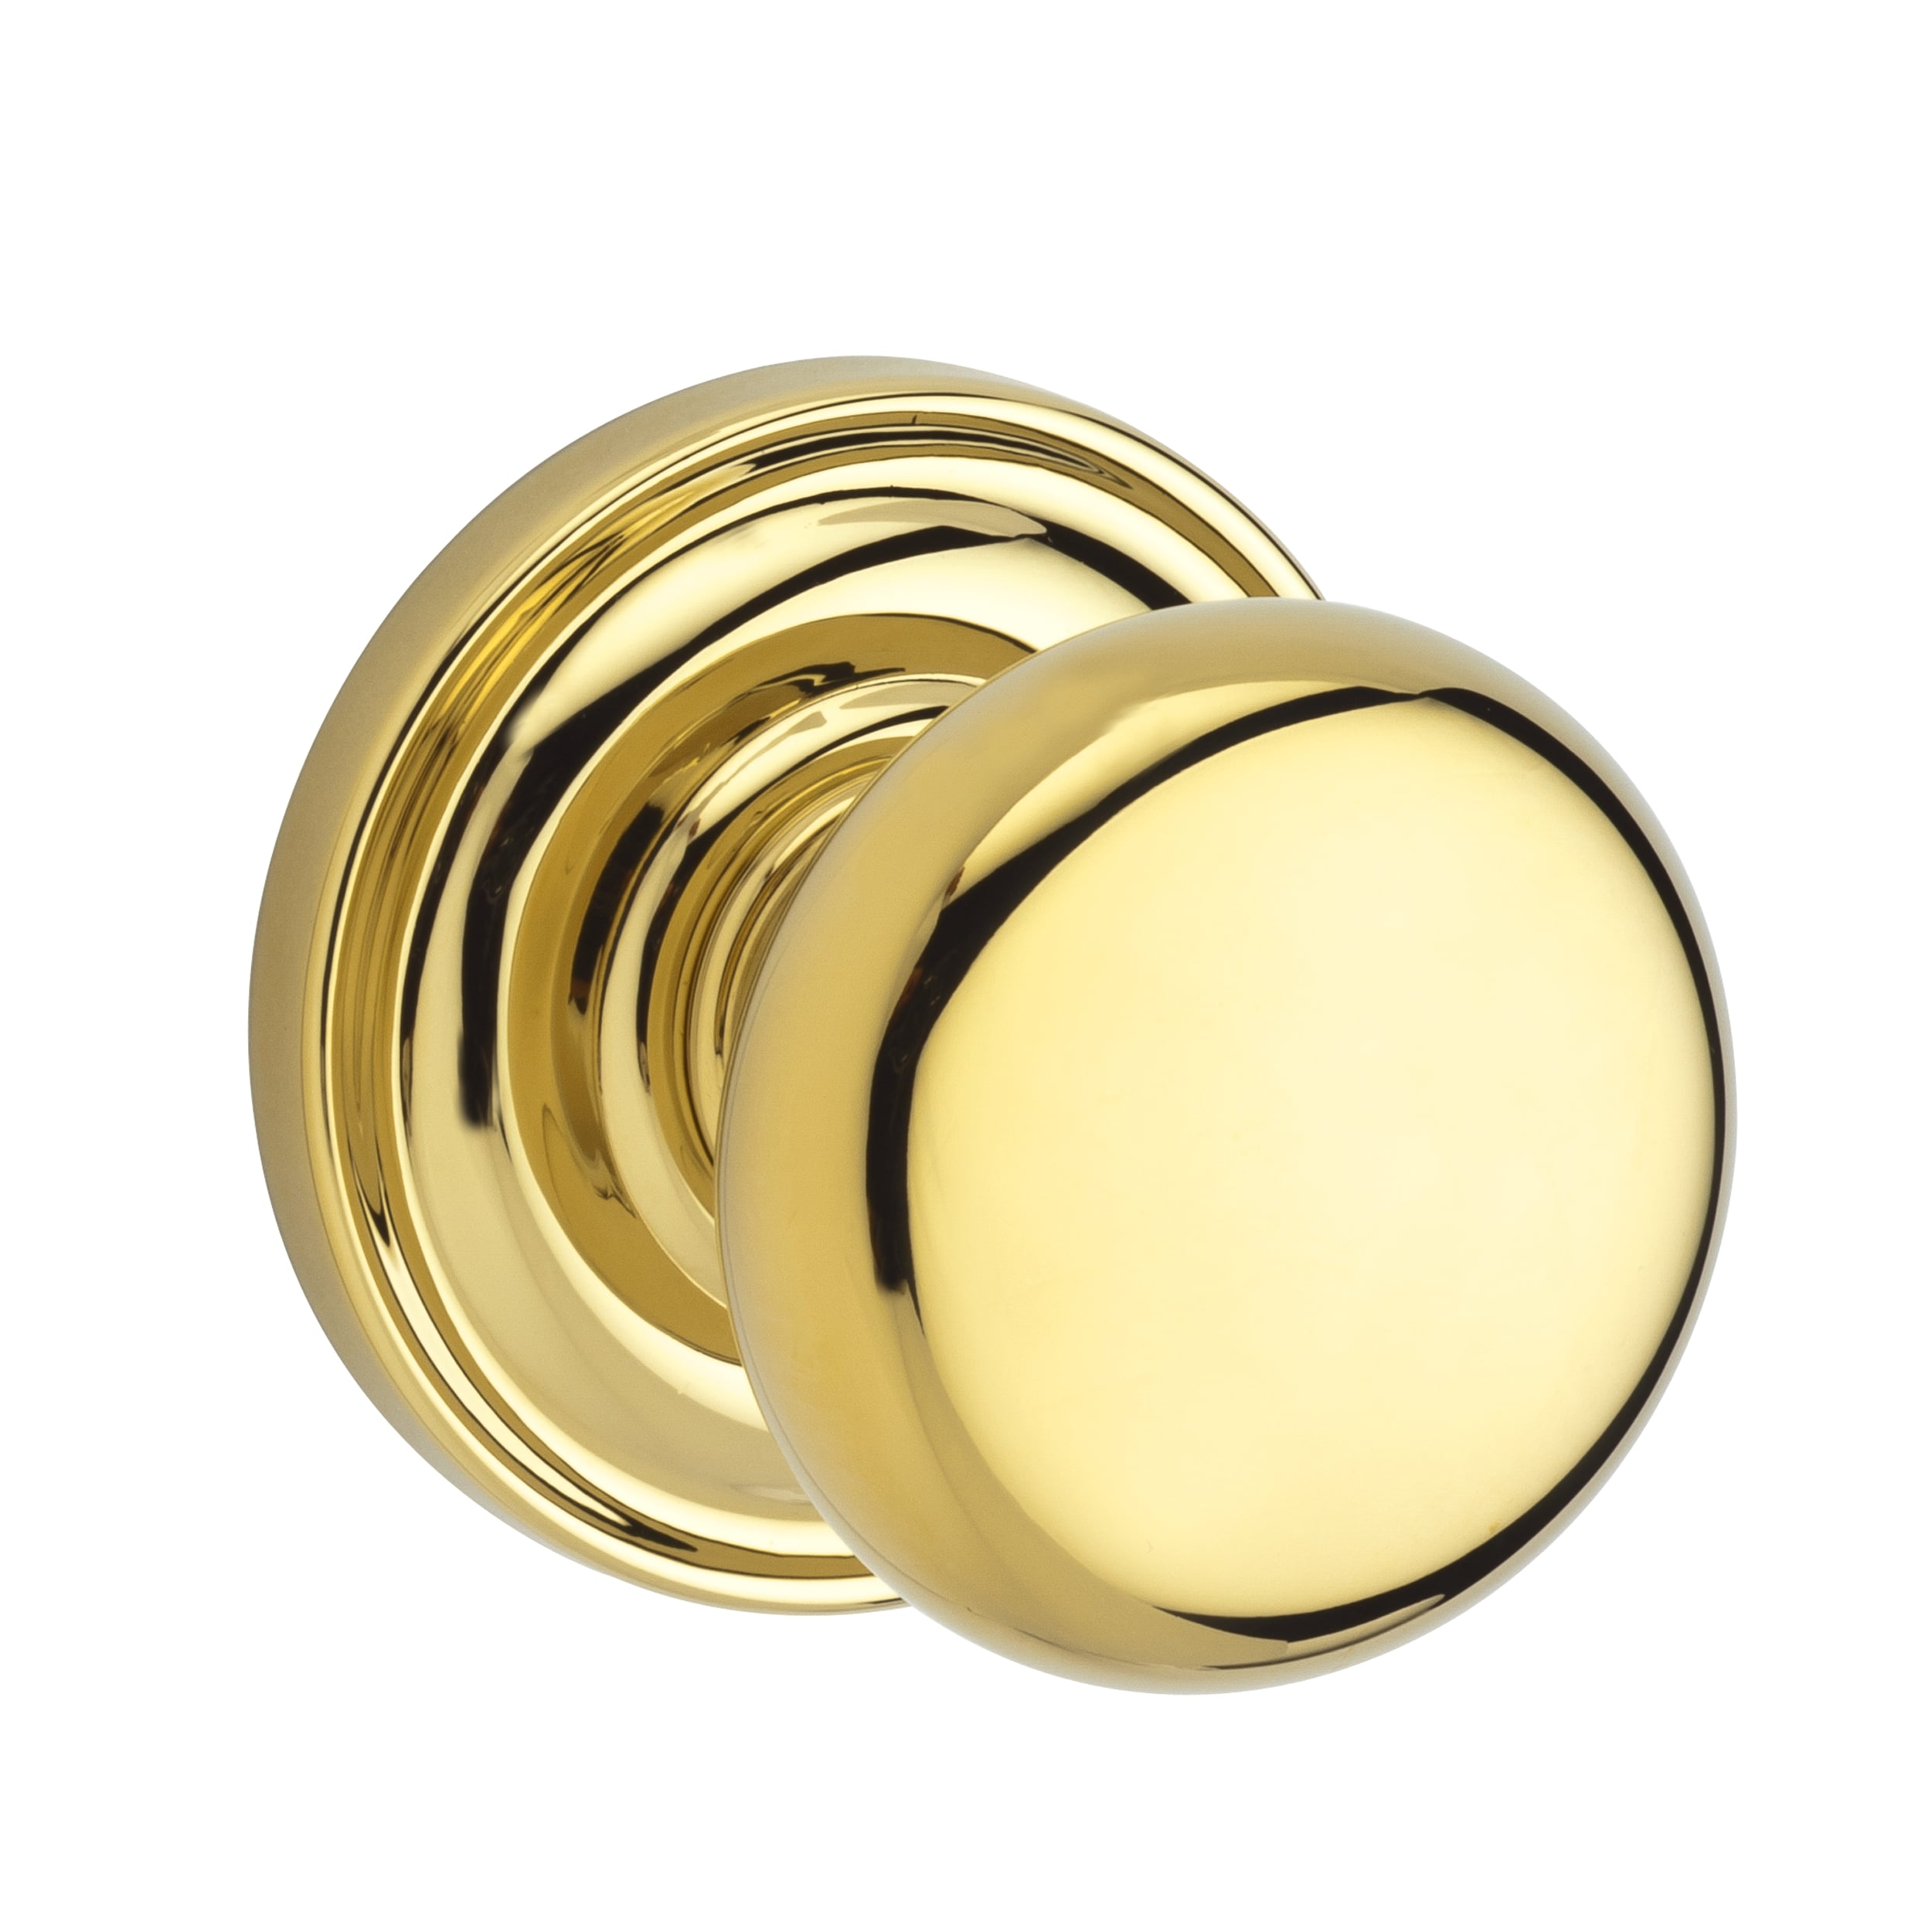 baldwin pvroutrr003 polished brass reserve round knob round